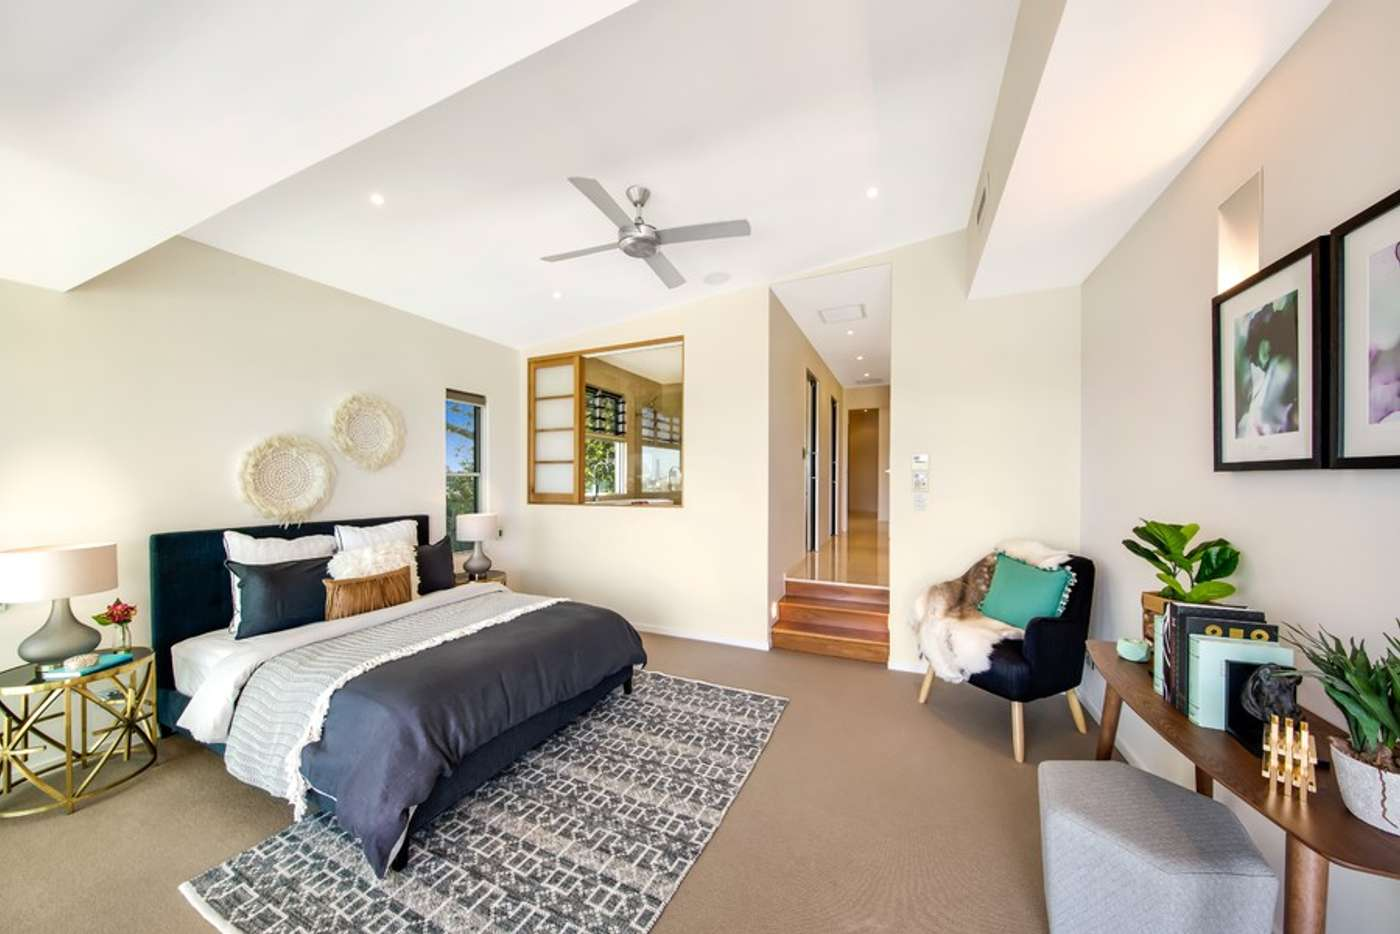 Fifth view of Homely house listing, 128 Crosby Road, Ascot QLD 4007